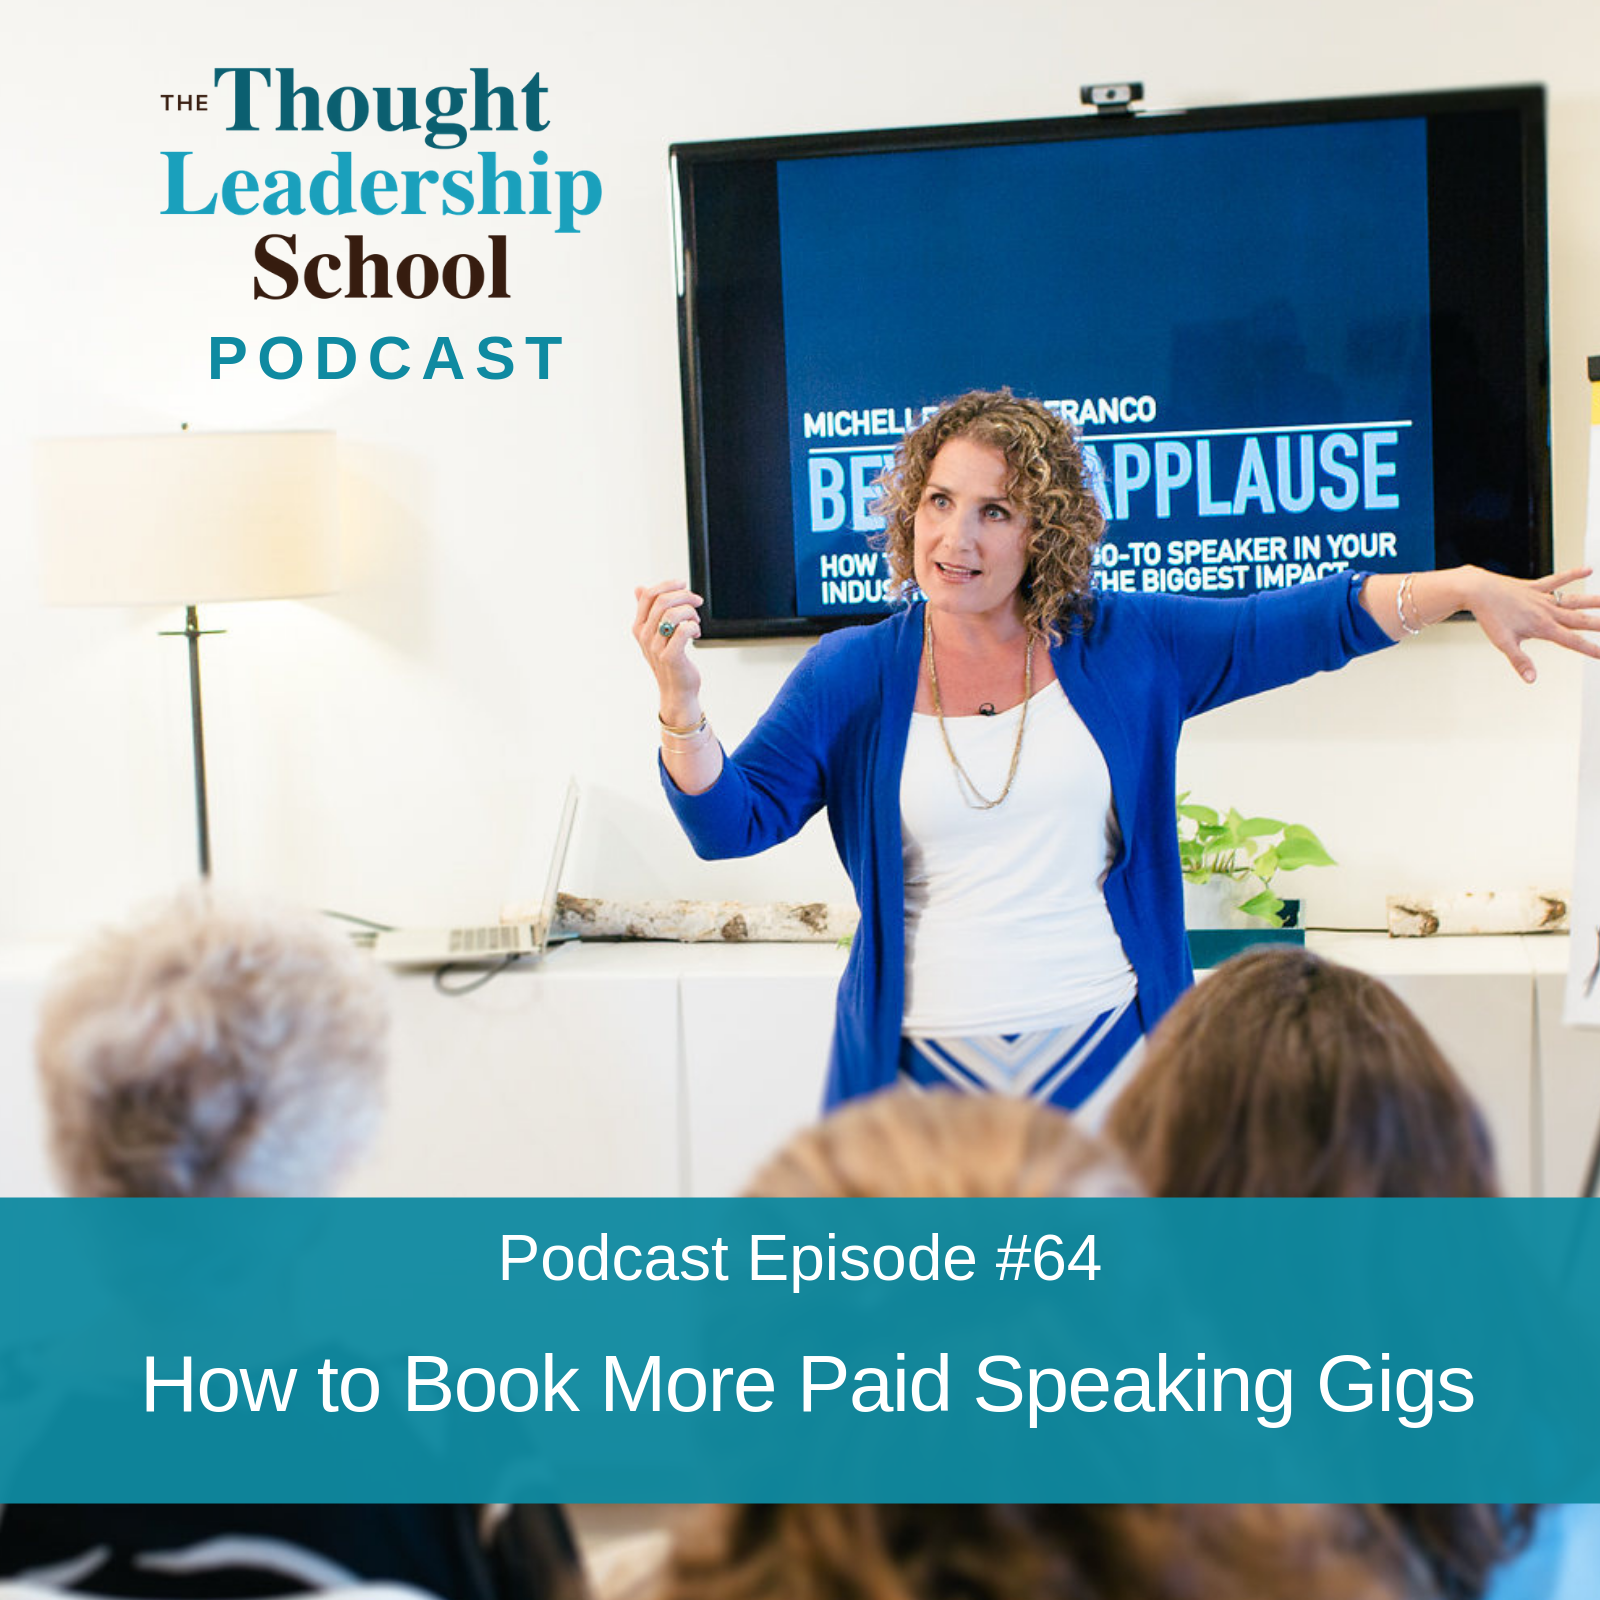 Ep #64: How to Book More Paid Speaking Gigs